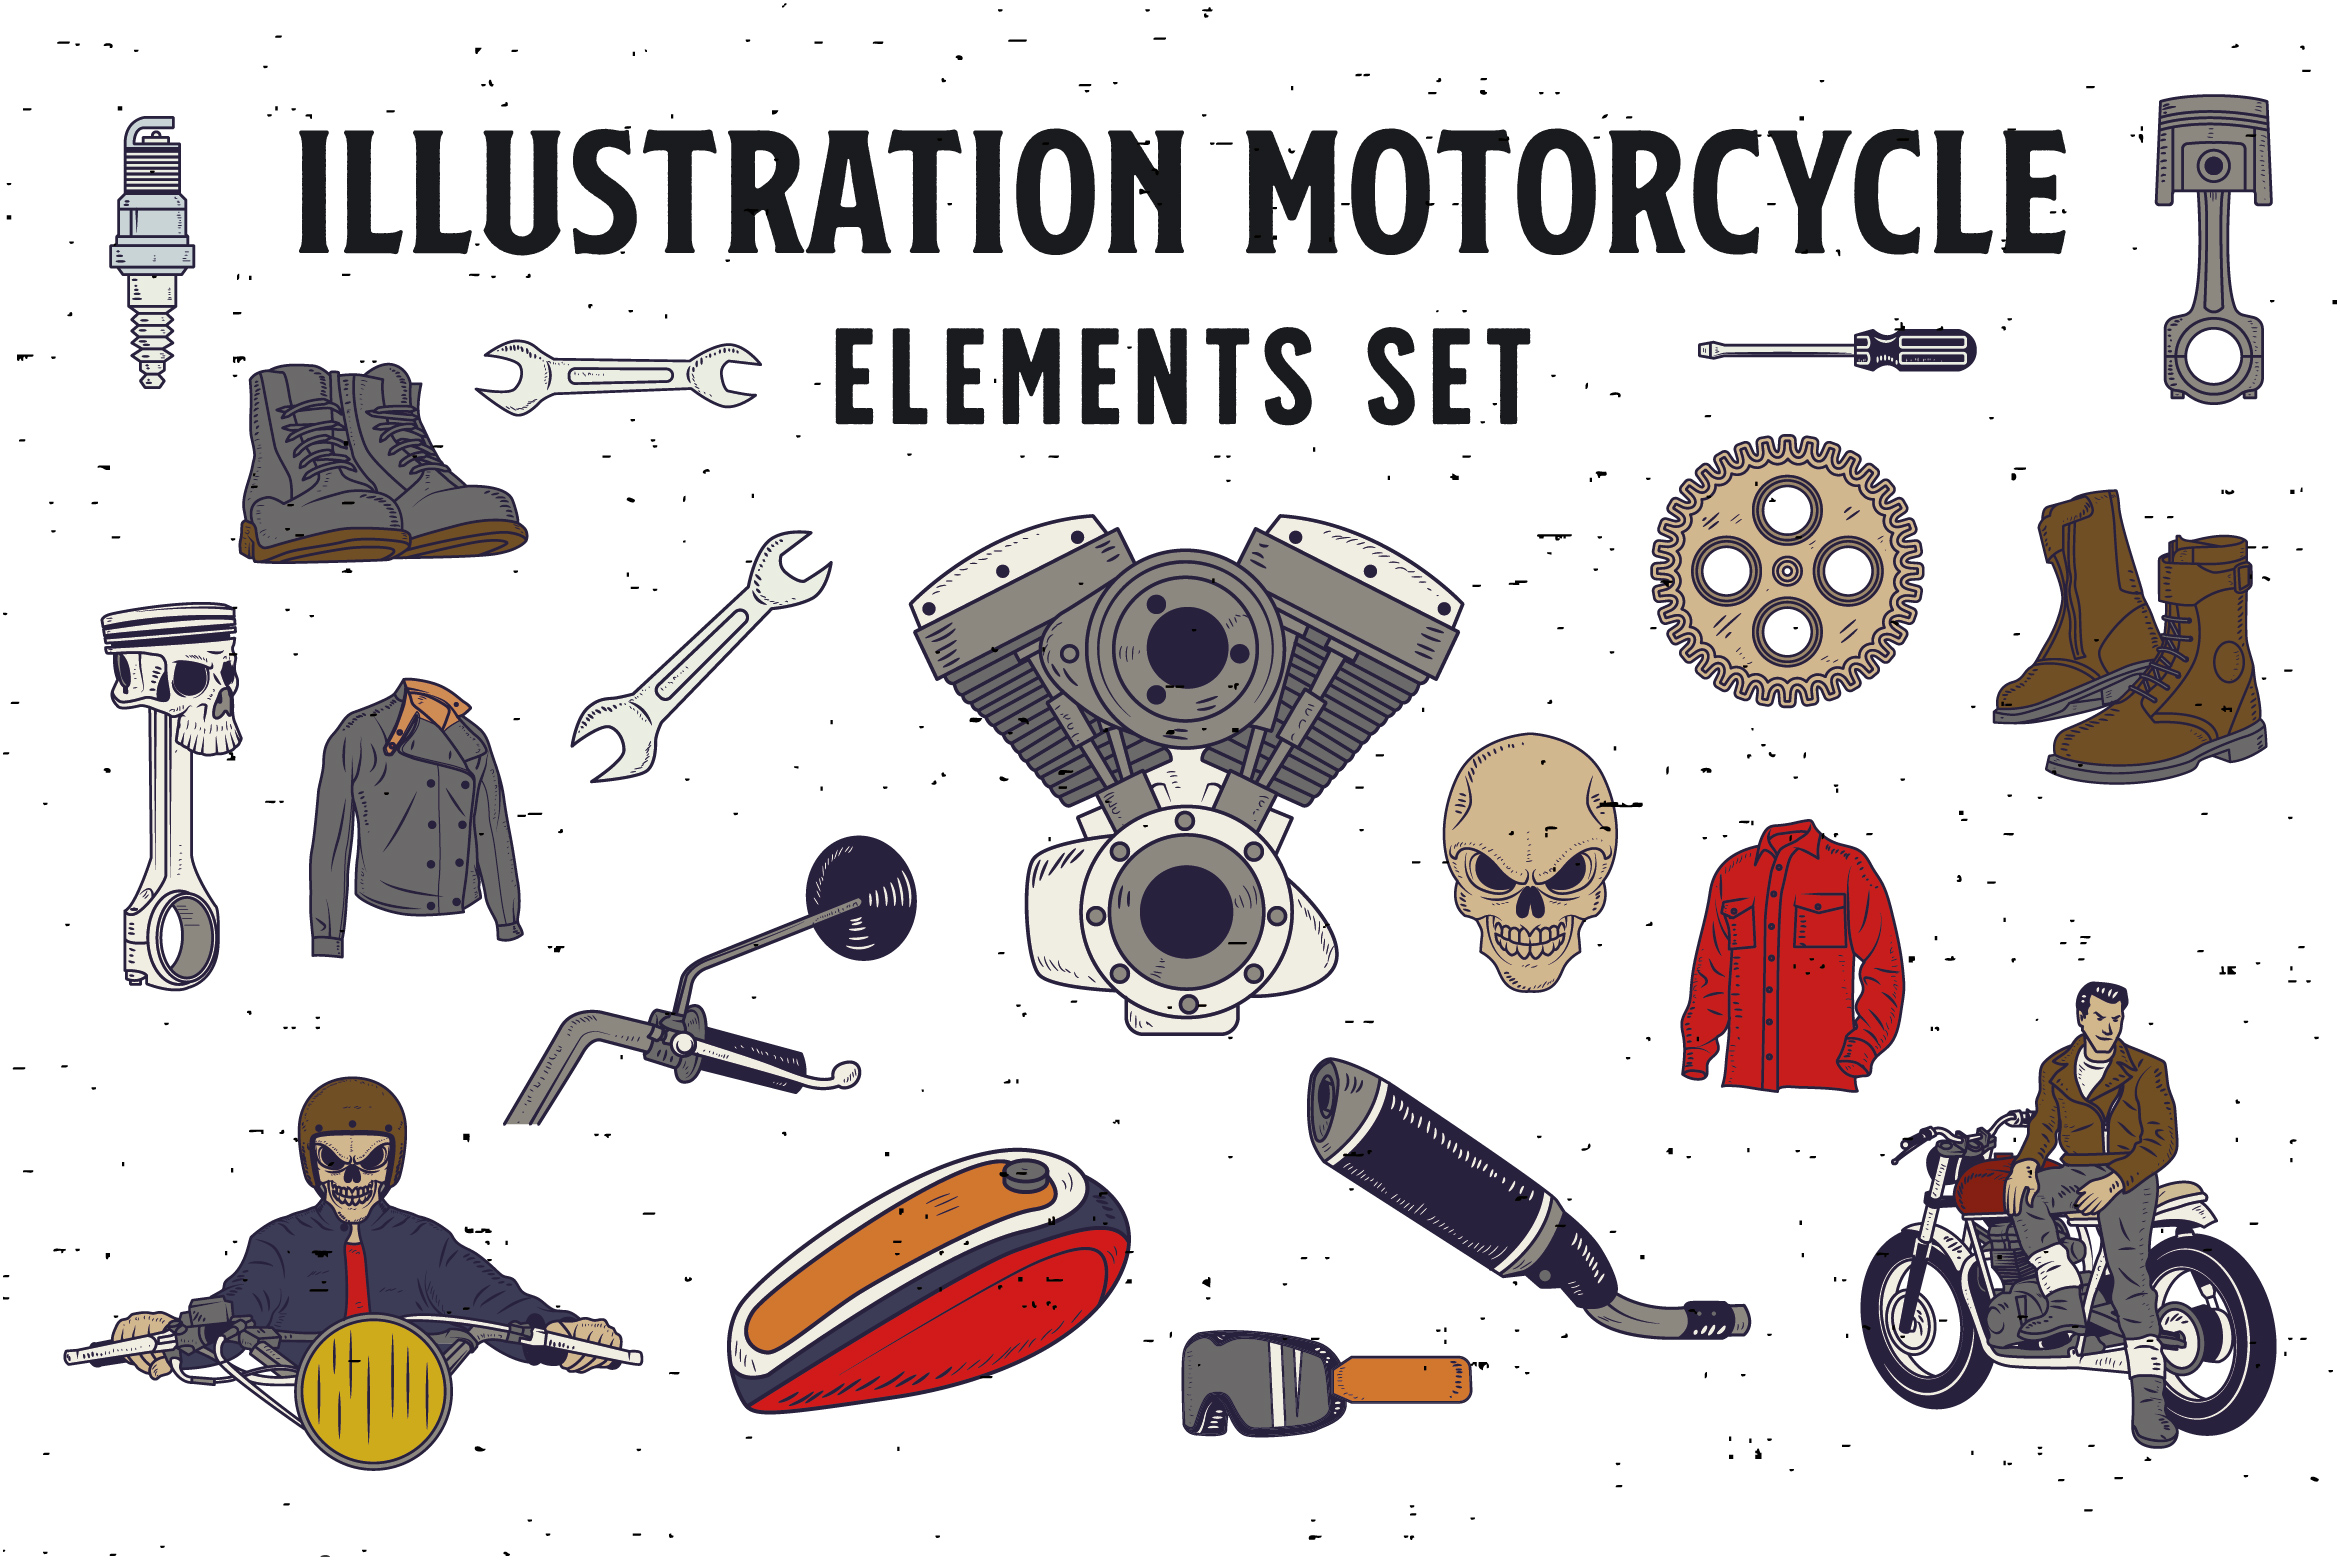 18 ILLUSTRATION MOTORCYCLE ELEMENTS Graphic Illustrations By storictype